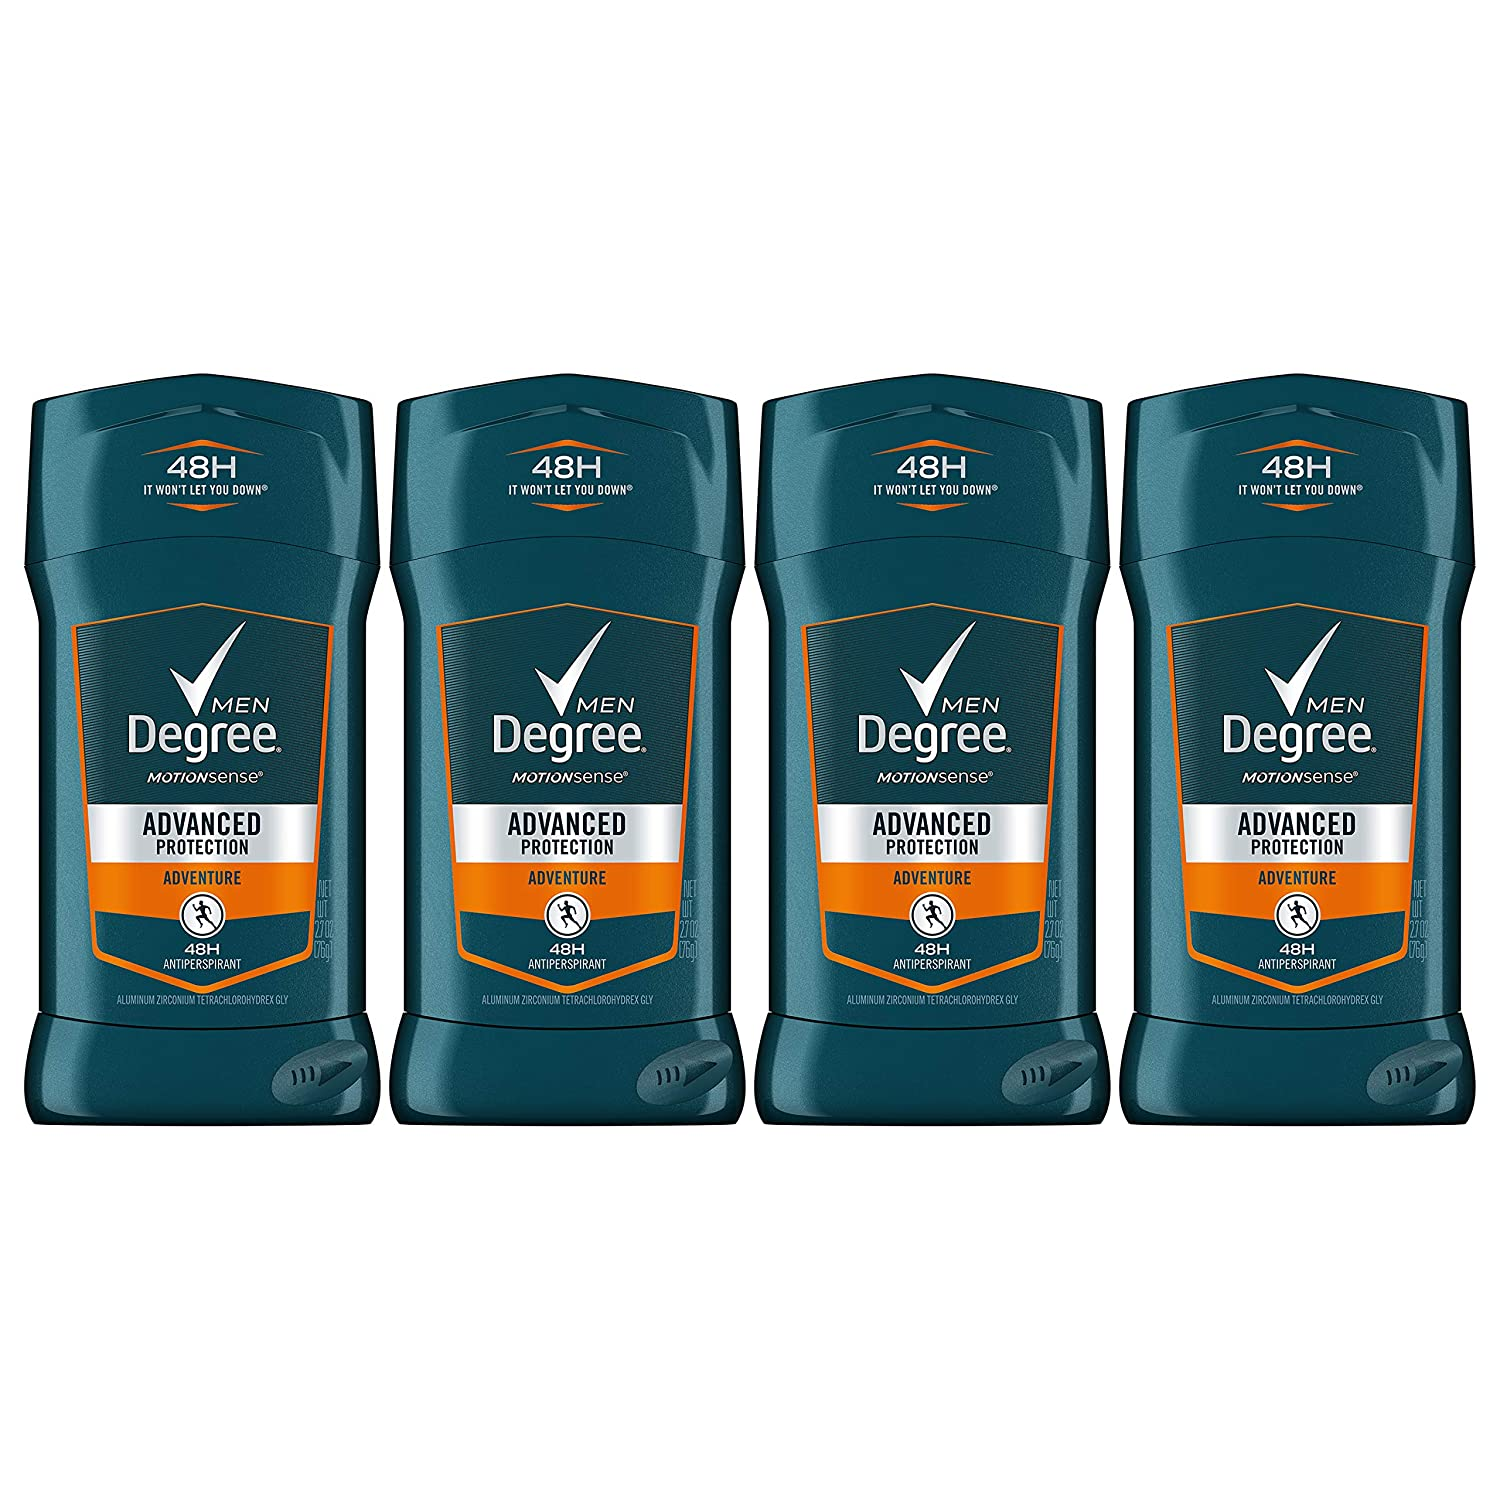 Degree Men 48-hour Antiperspirant Feel Fresh and Stay Dry Adventure with Deodorant to stop Odor and Wetness 2.7 oz -Pack of 4 : Degree Adrenaline : Beauty